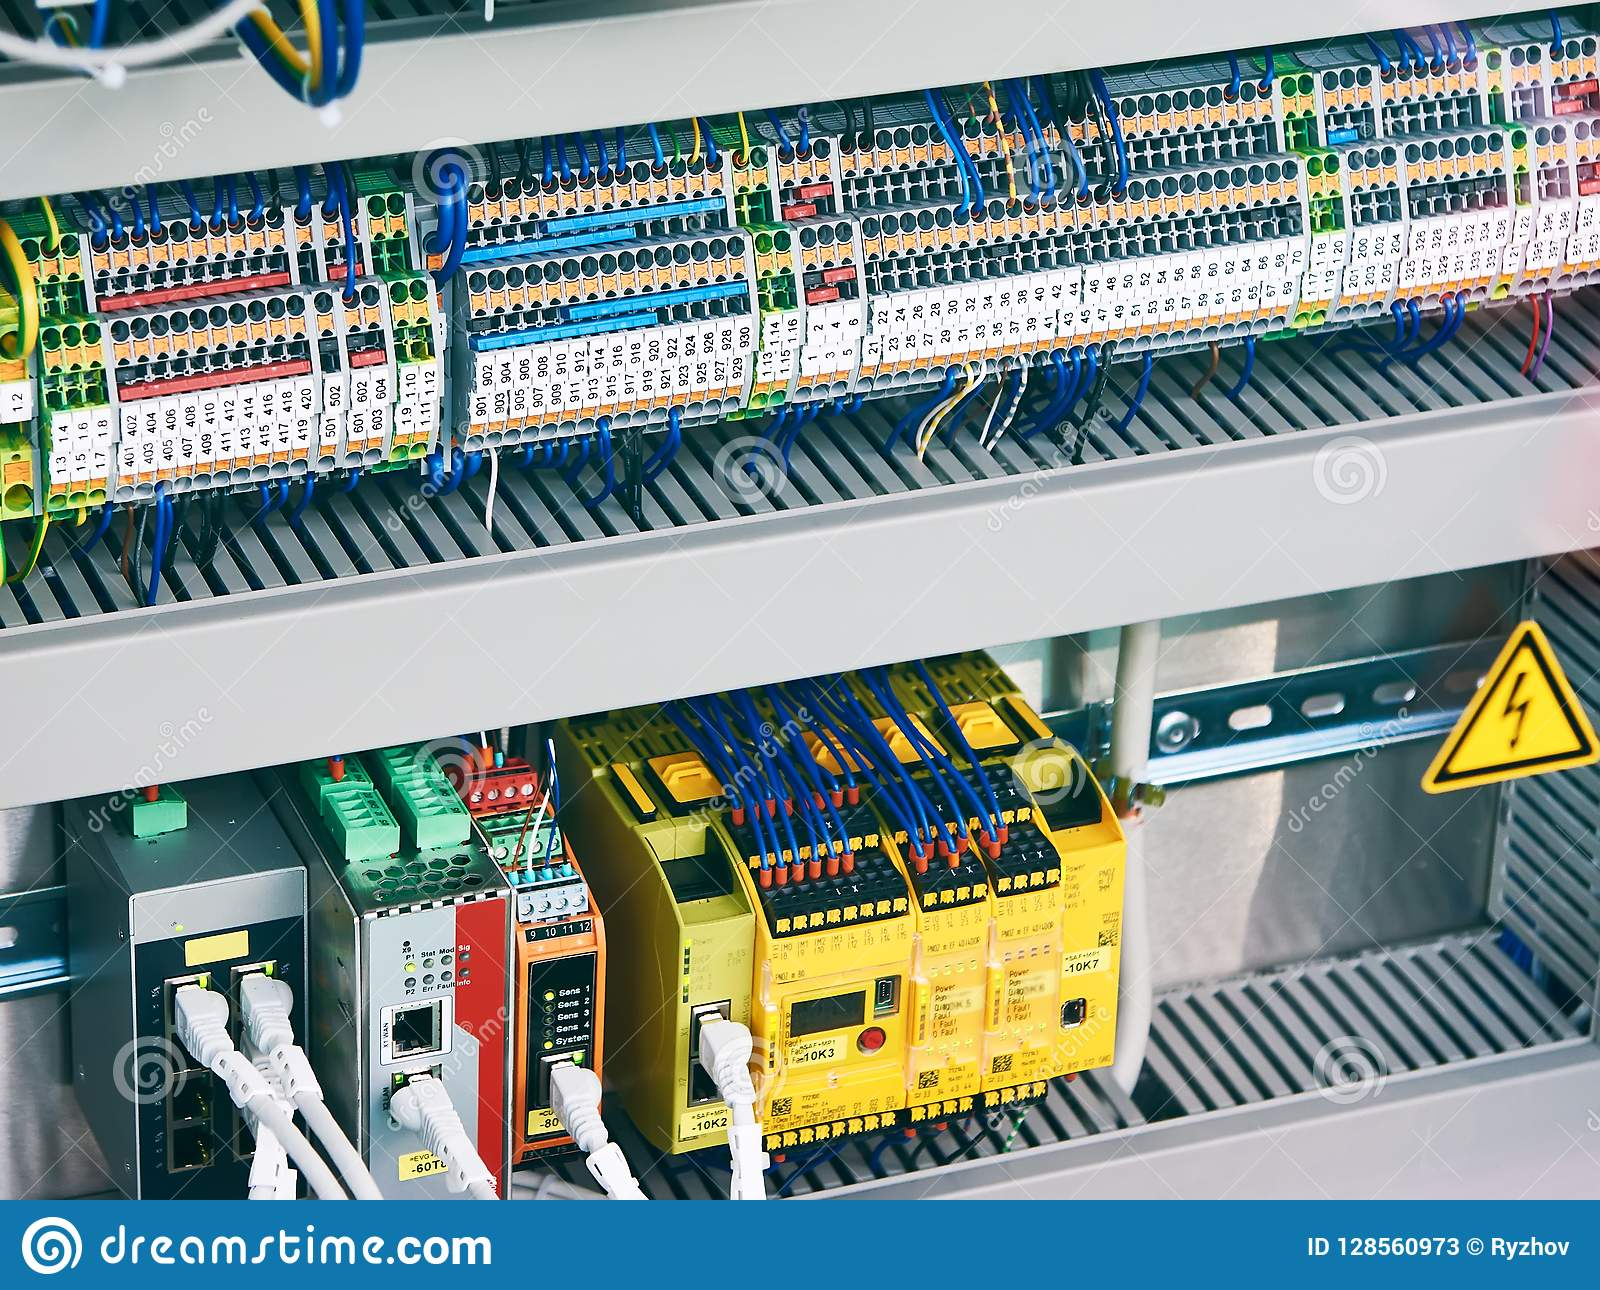 Electronic And Electrical Components Stock Image - Image of